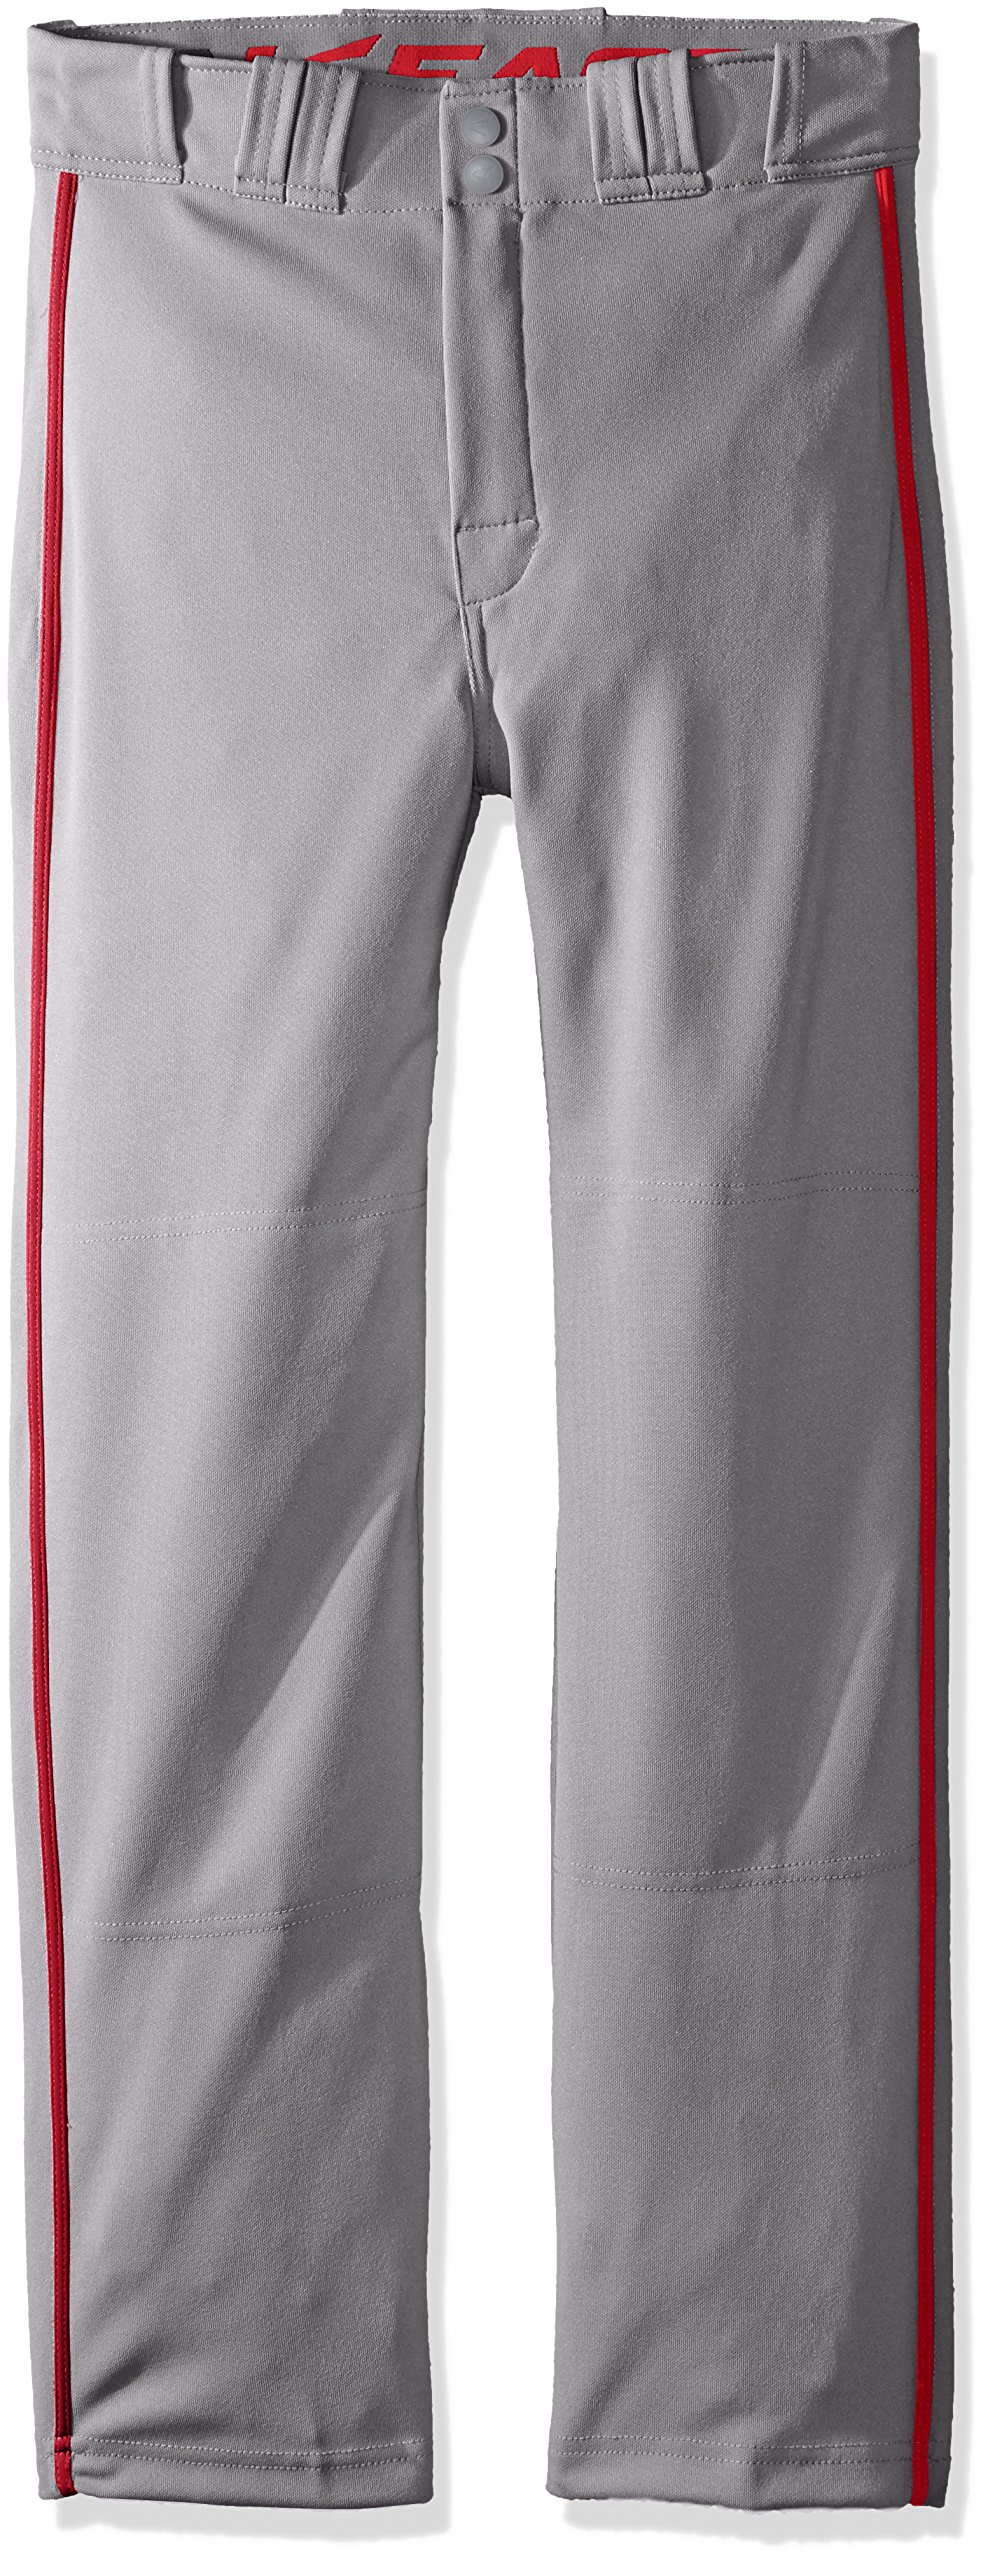 Easton Rival 2 Baseball Softball Pant | Youth | Small | Grey Red | 2020 | Double Reinforced Knee | Elastic Waistband w/ 2 Color Internal Logo | 2 Batting Glove Pockets | 100% Polyester